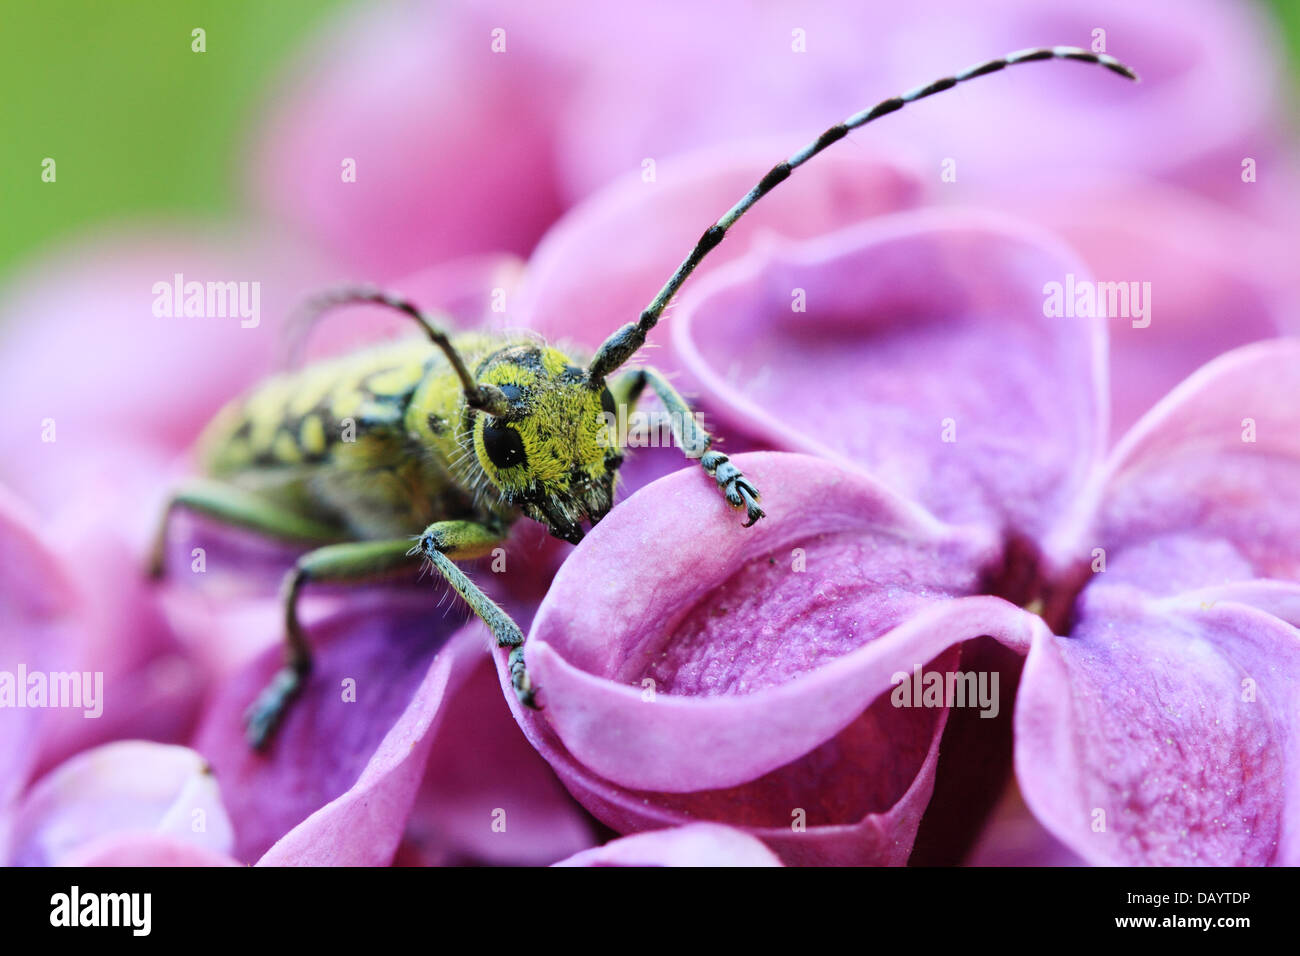 The_colourful_longhorn_beetle_species_Sa